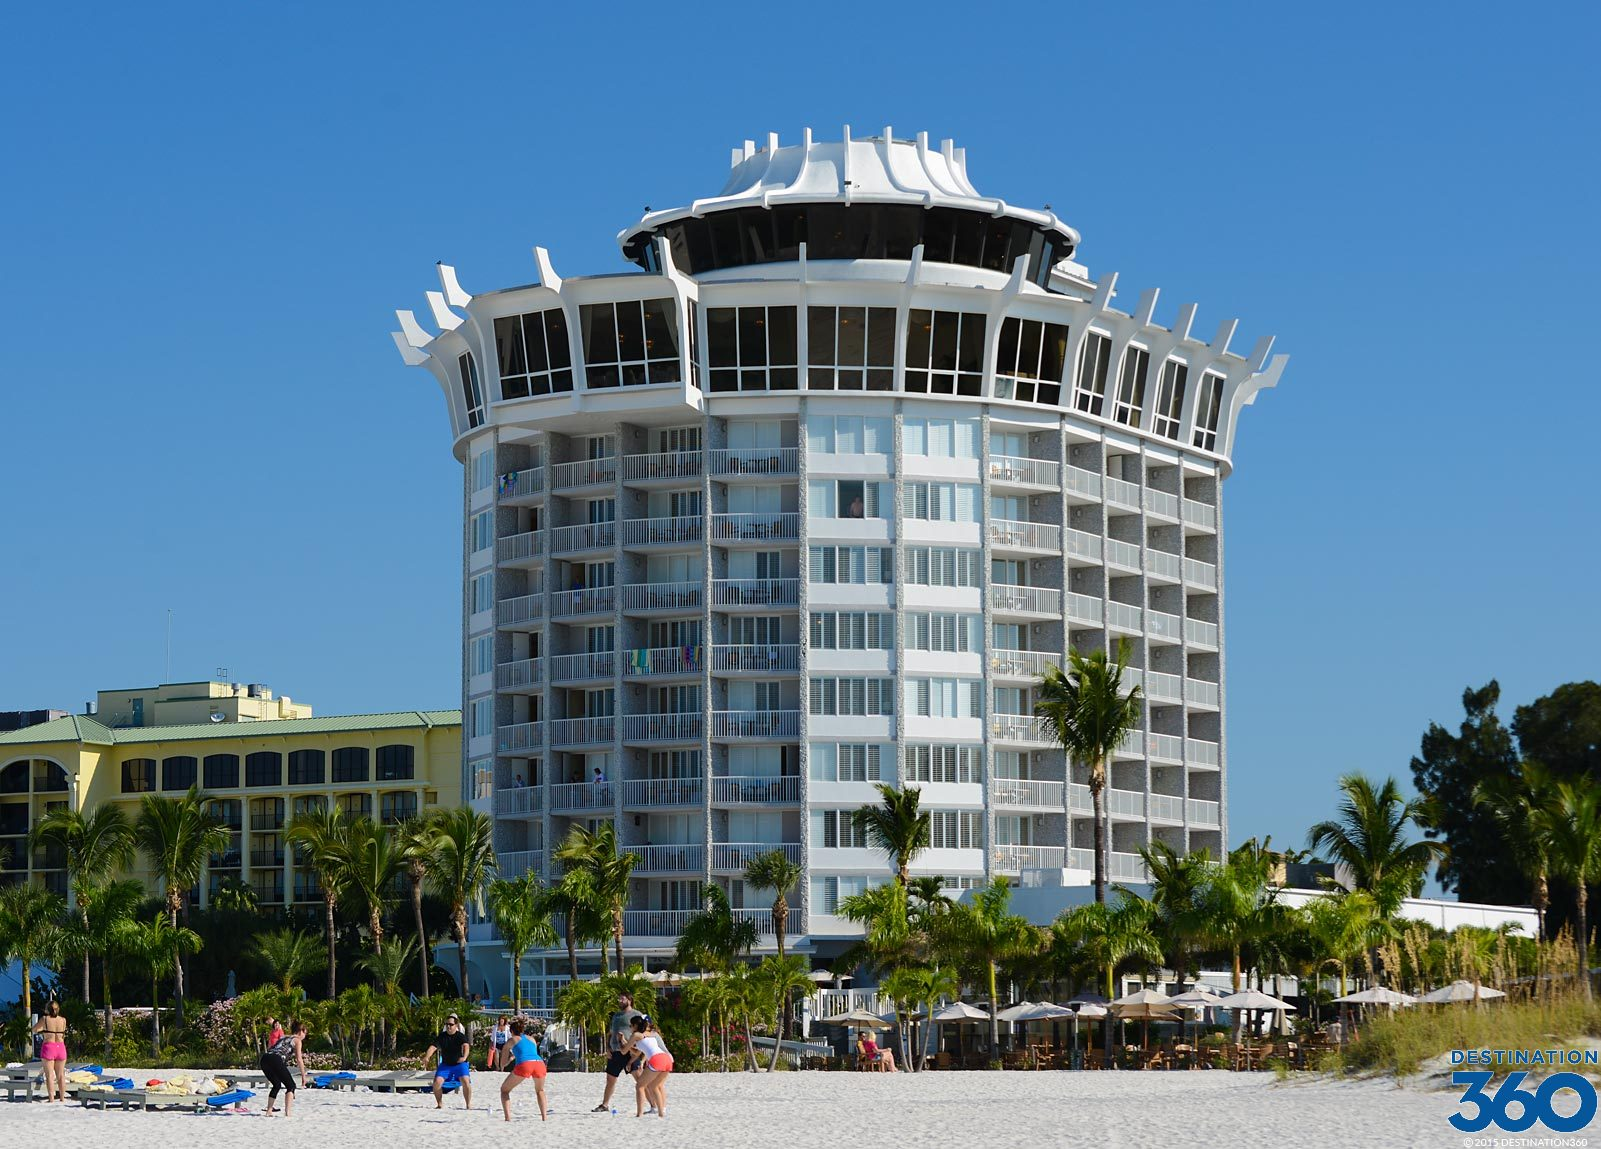 Plaza Beach Hotel Clearwater Florida